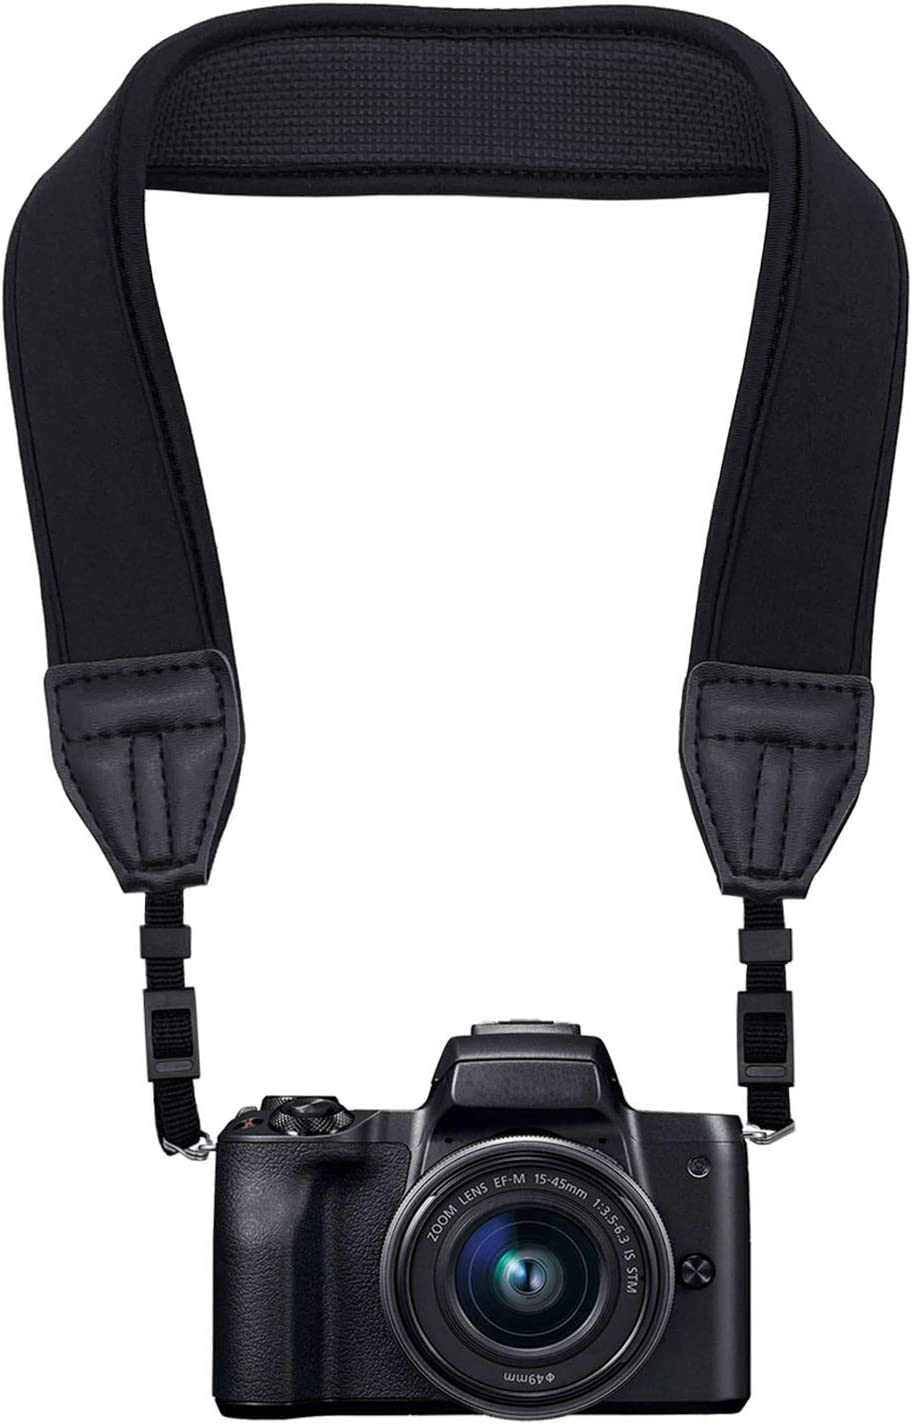 Hukado Camera Strap, Adjustable Anti-Slip Elastic Neoprene Shoulder Neck Strap for Most Canon Nikon Sony DSLR Cameras and Binoculars, Black